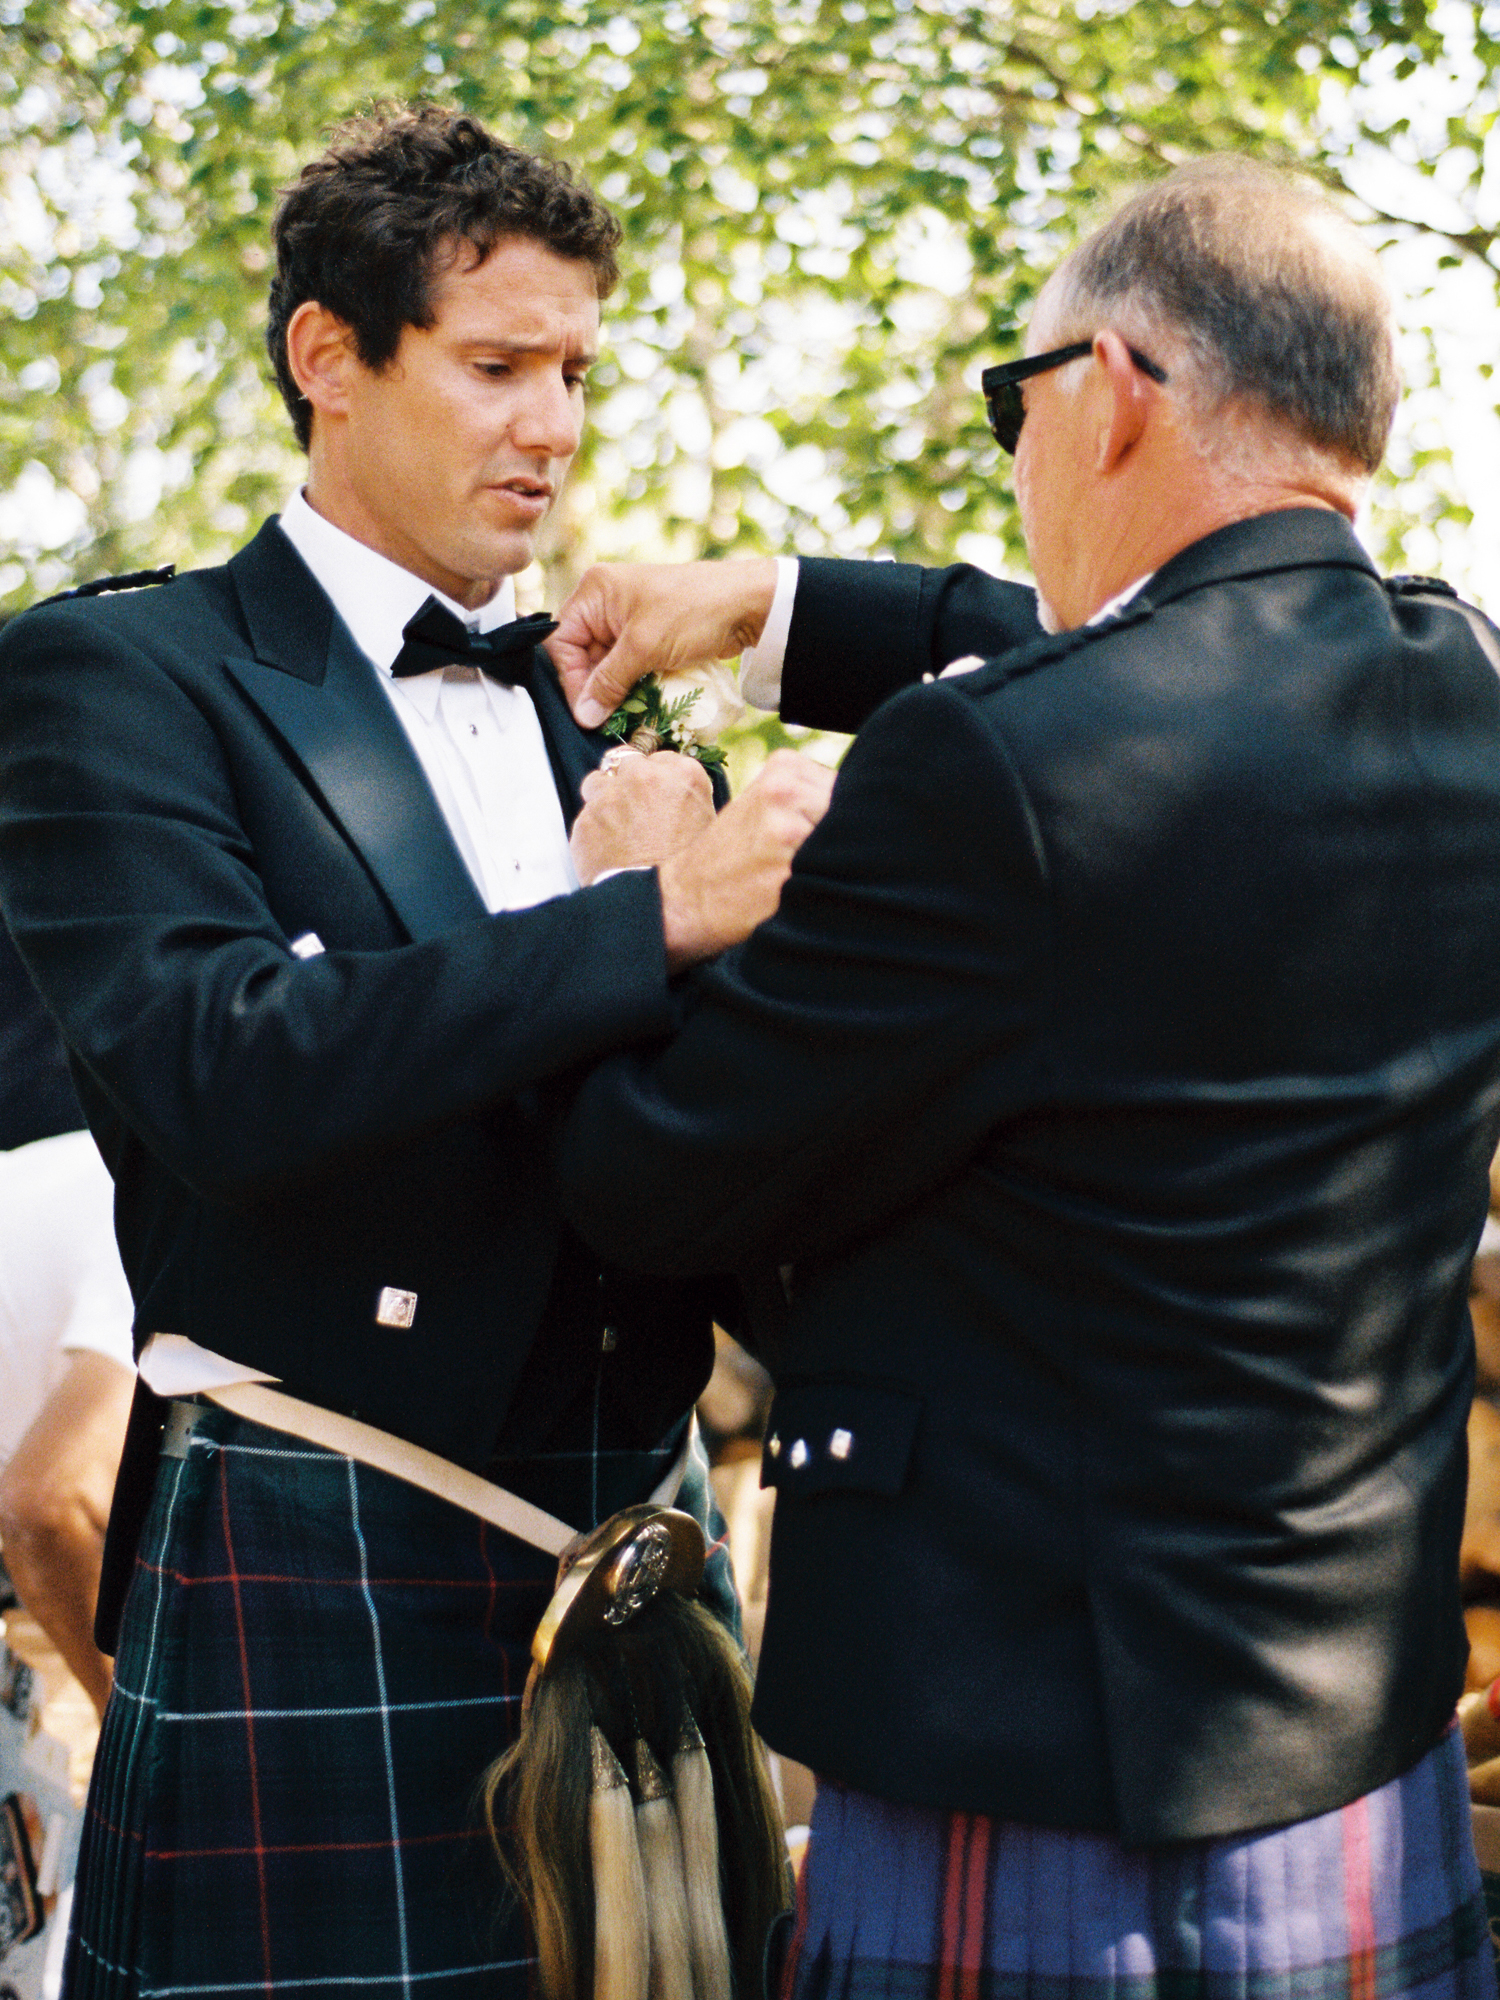 Father and son pinning corsage